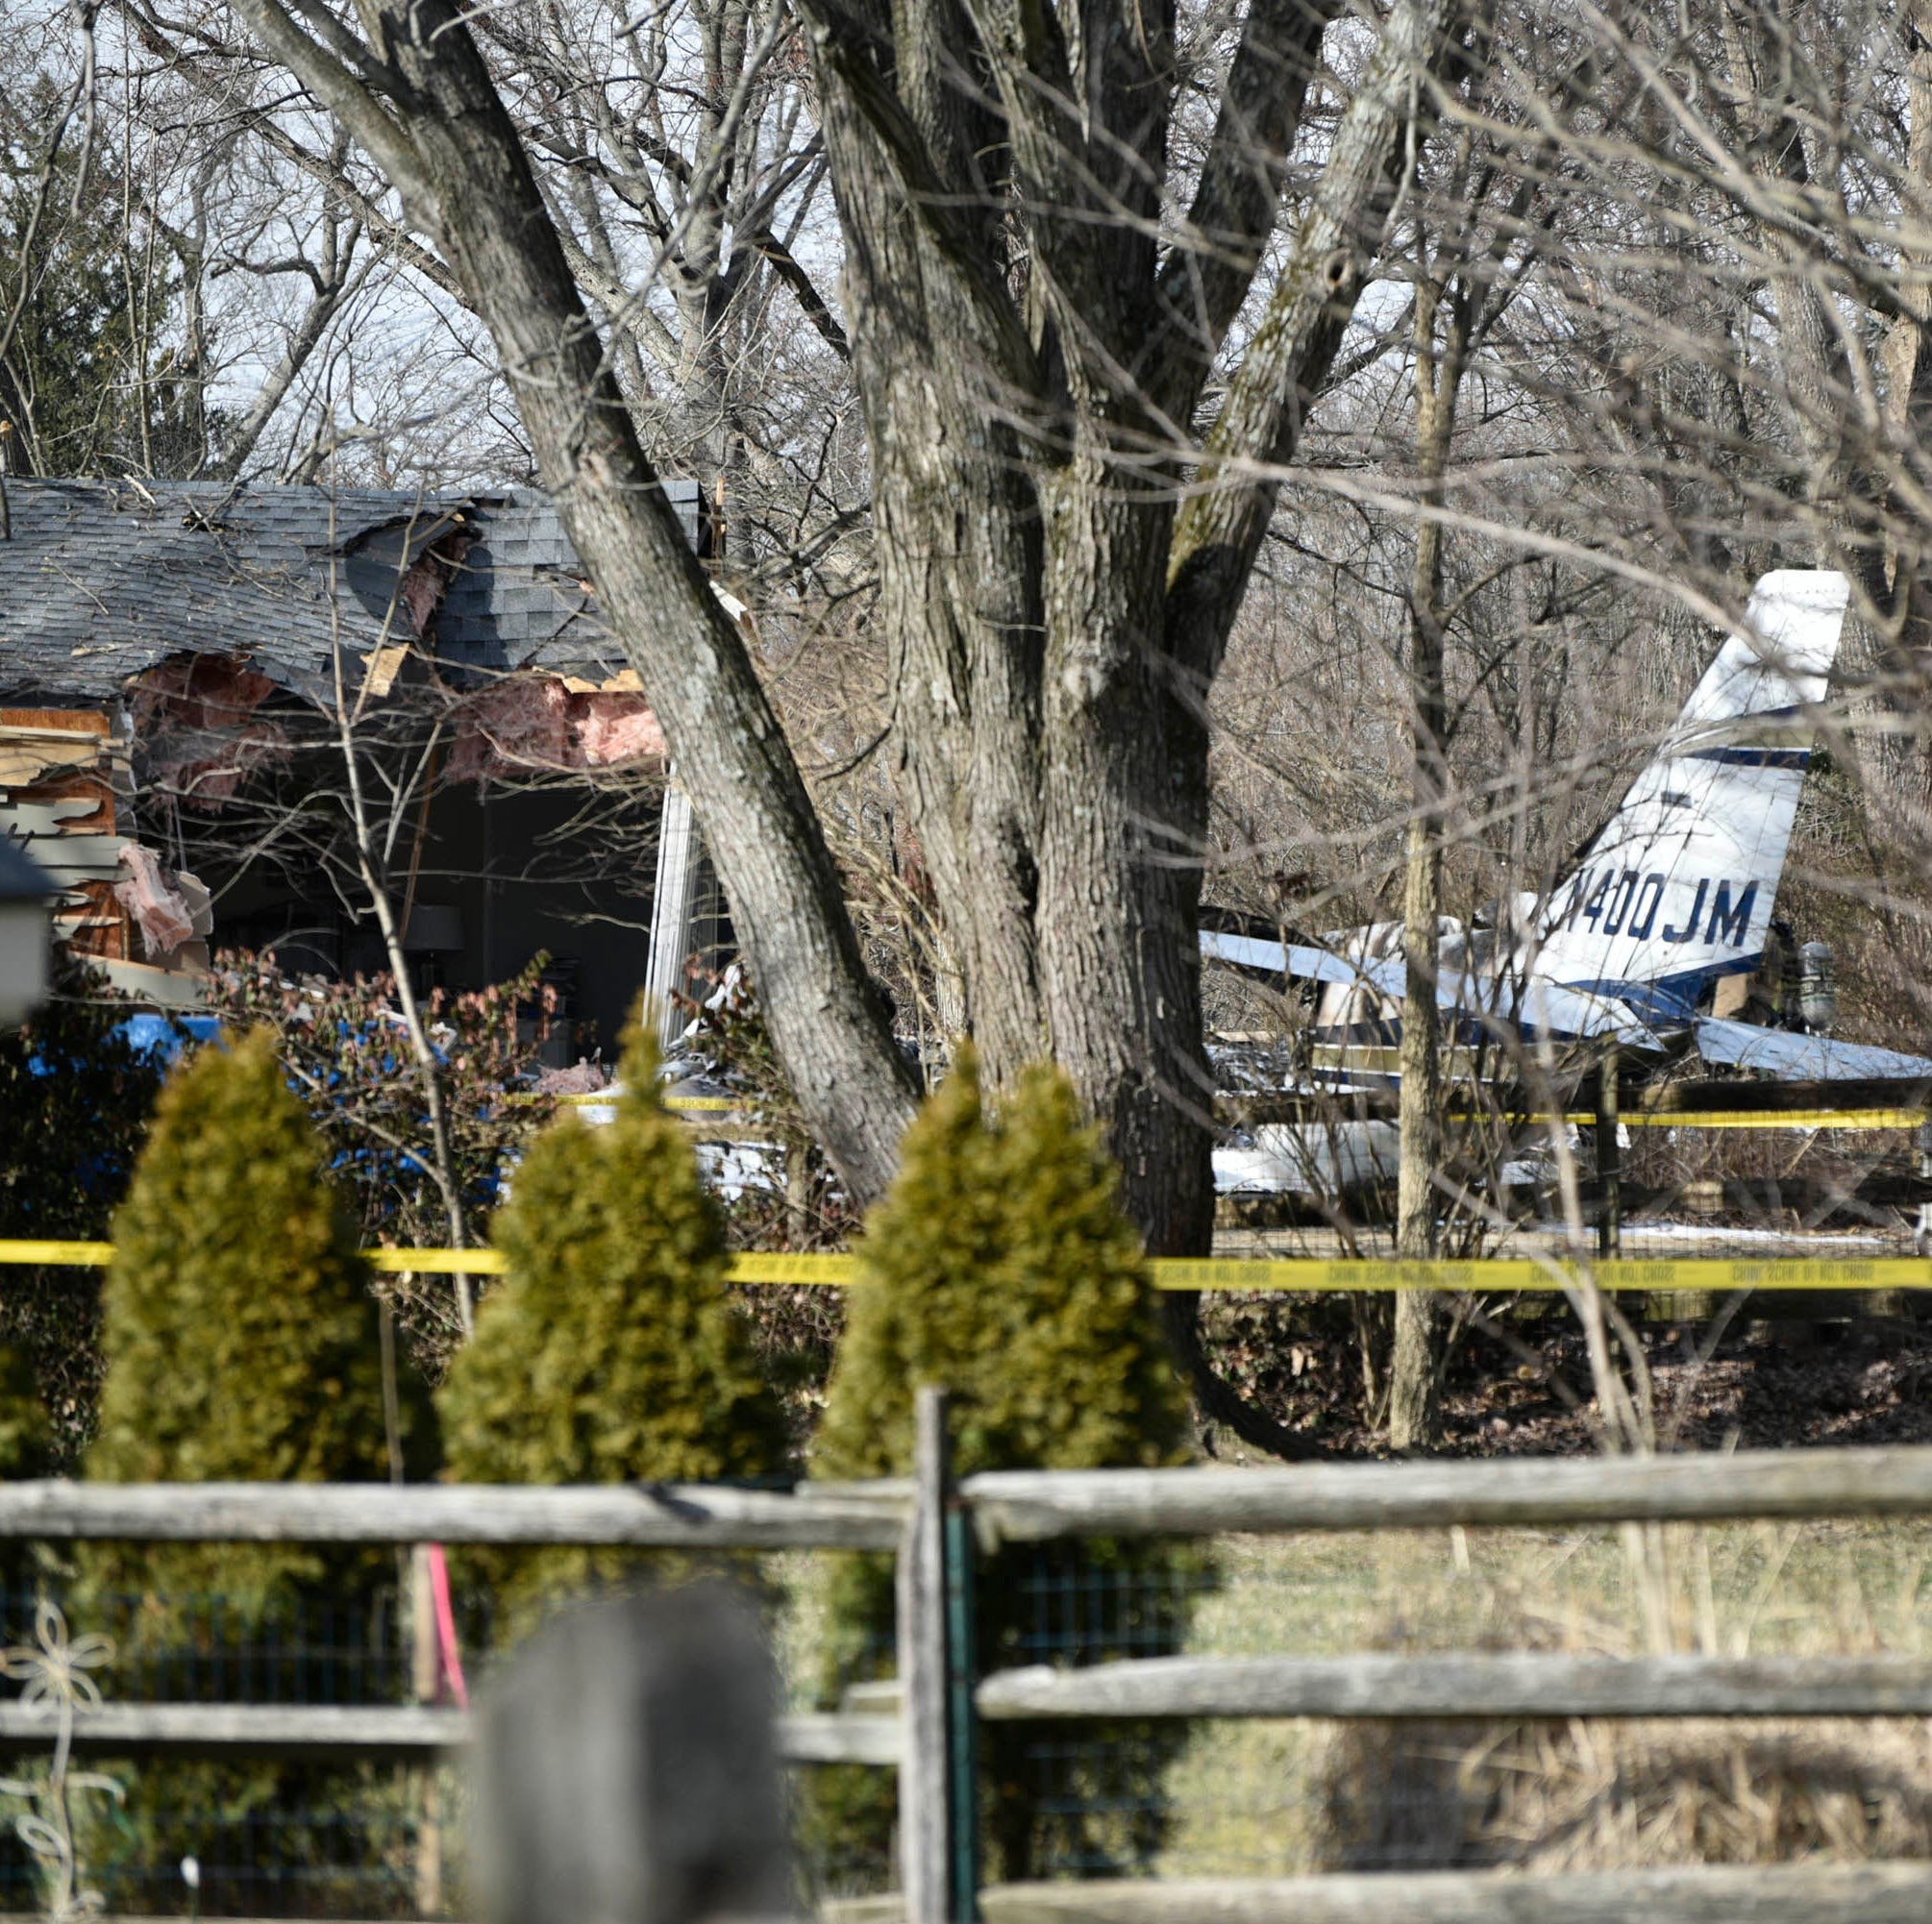 Plane registered to Mississippi company crashes in Madeira, Ohio, killing pilot